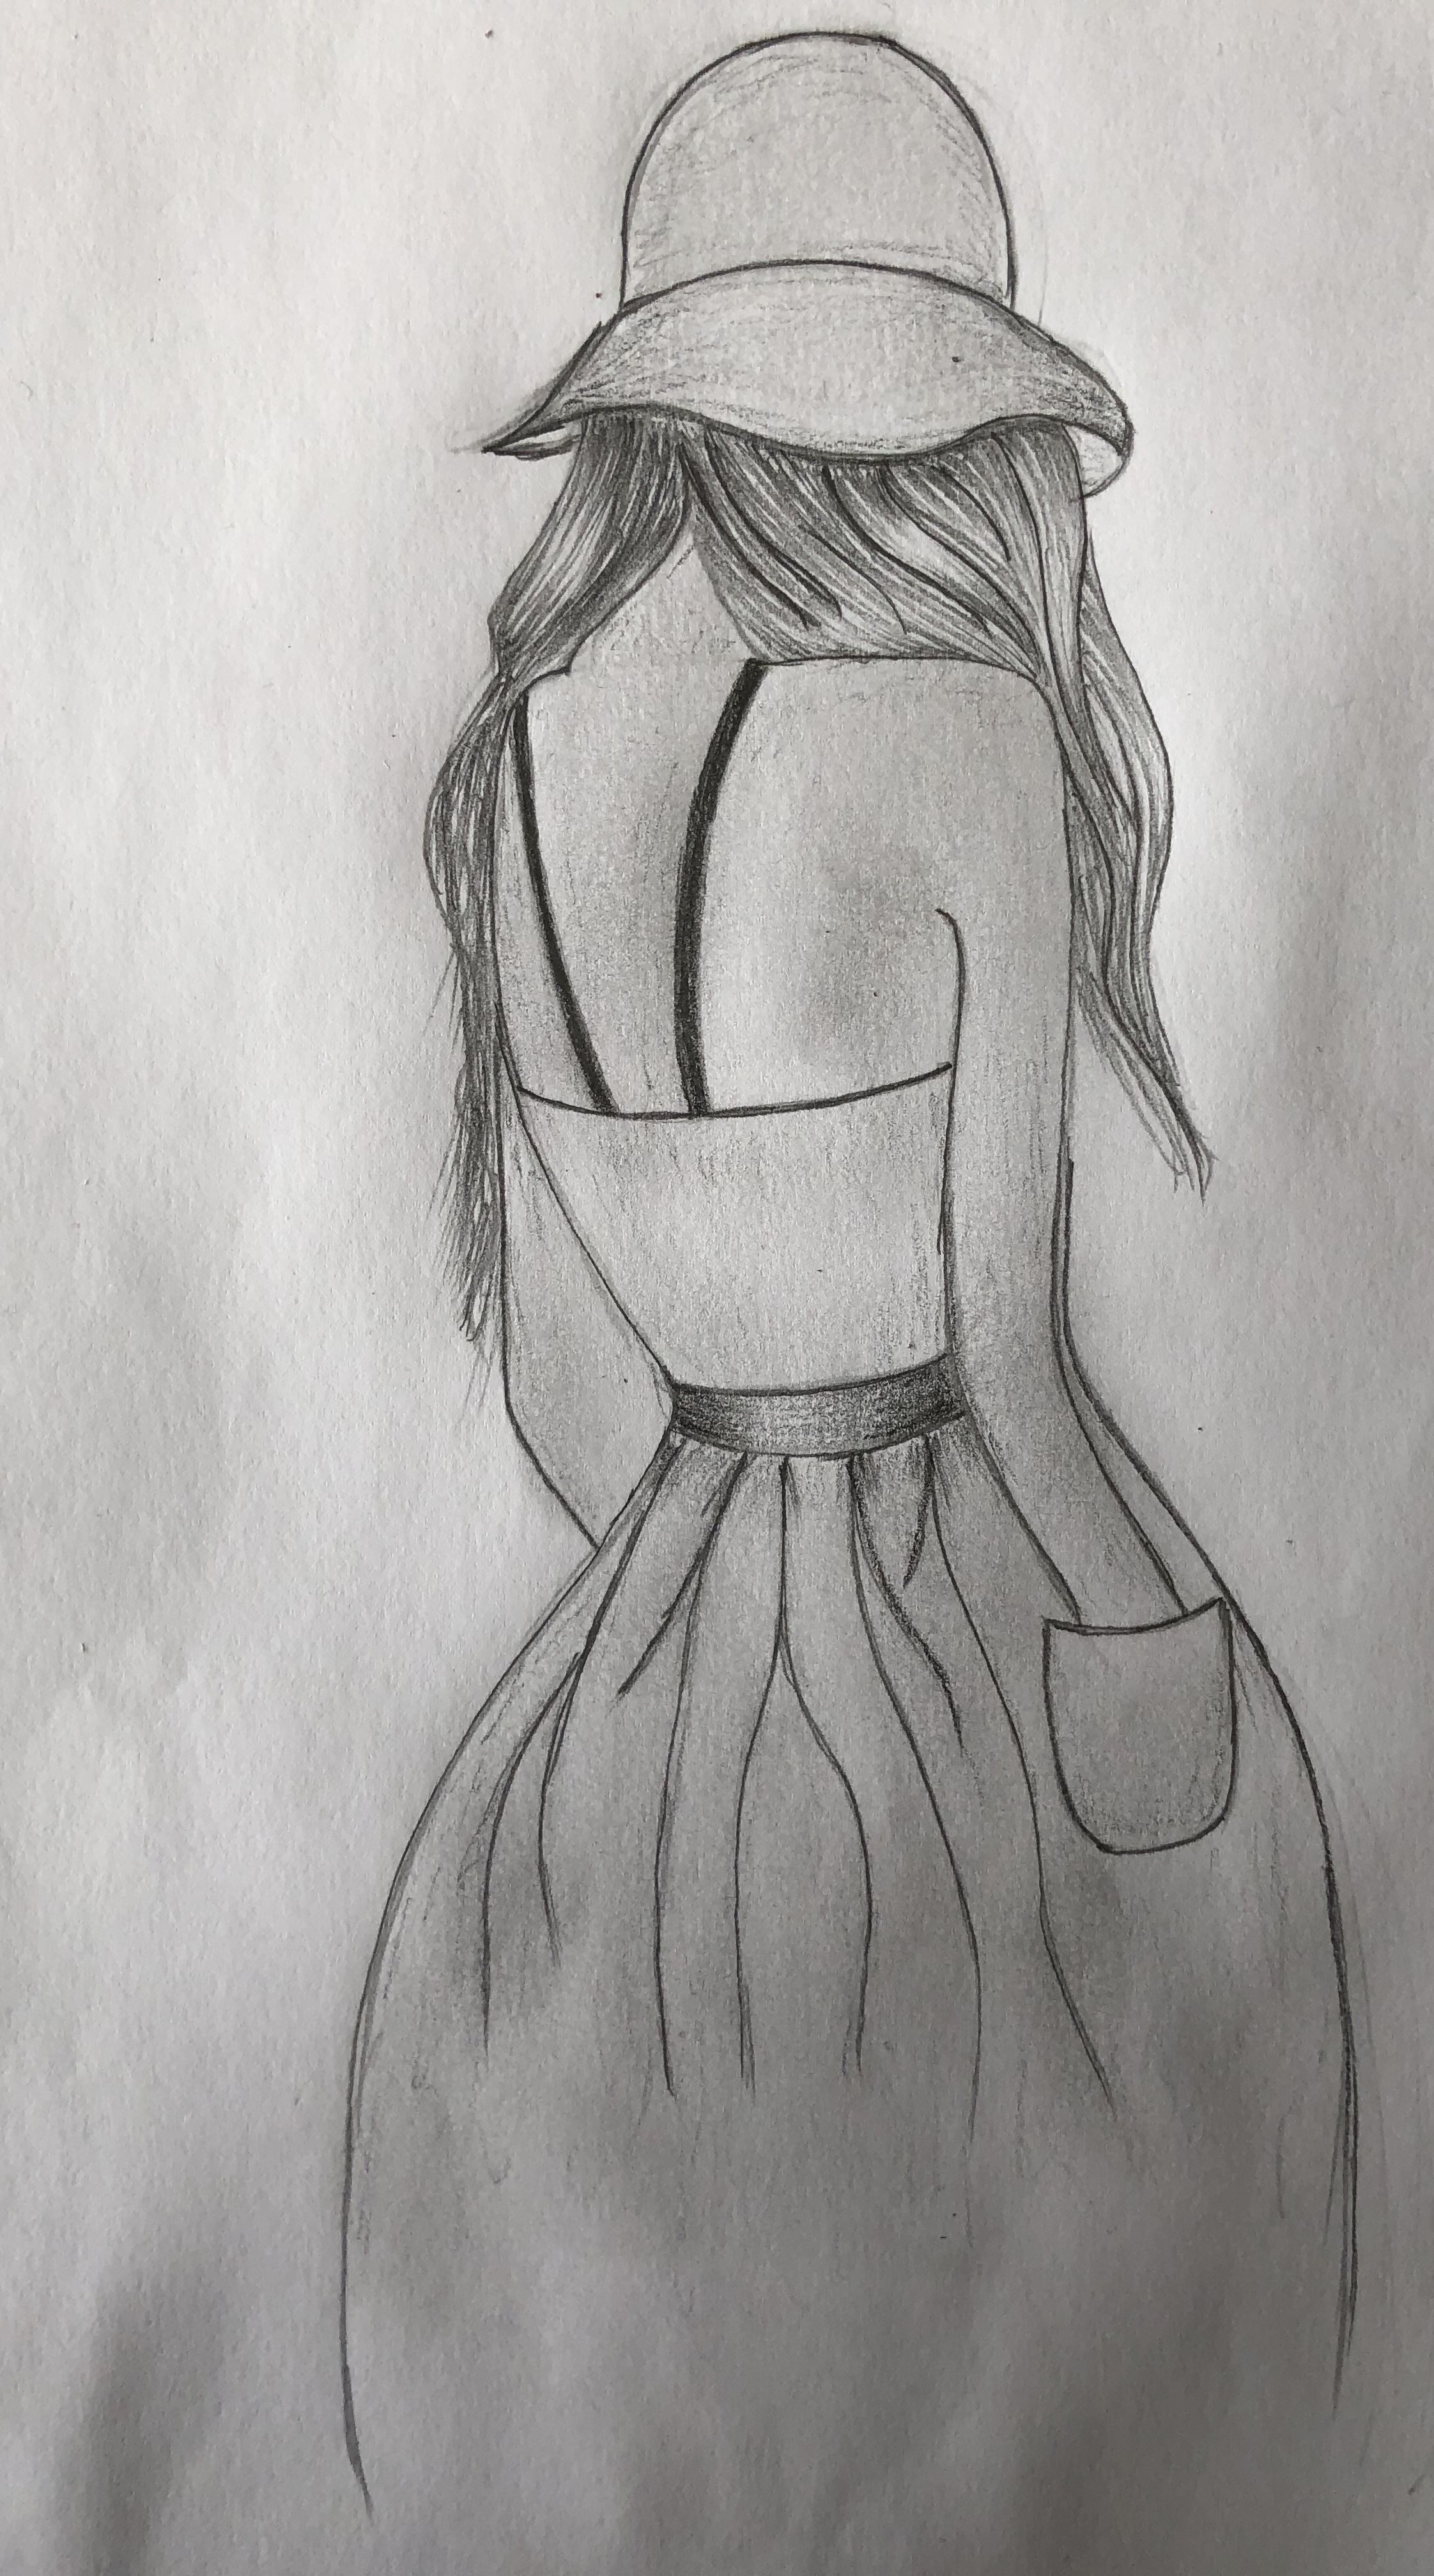 Pin By Angie On Drawings Edits Art Drawings Sketches Pencil Pencil Drawing Inspiration Girl Drawing Sketches